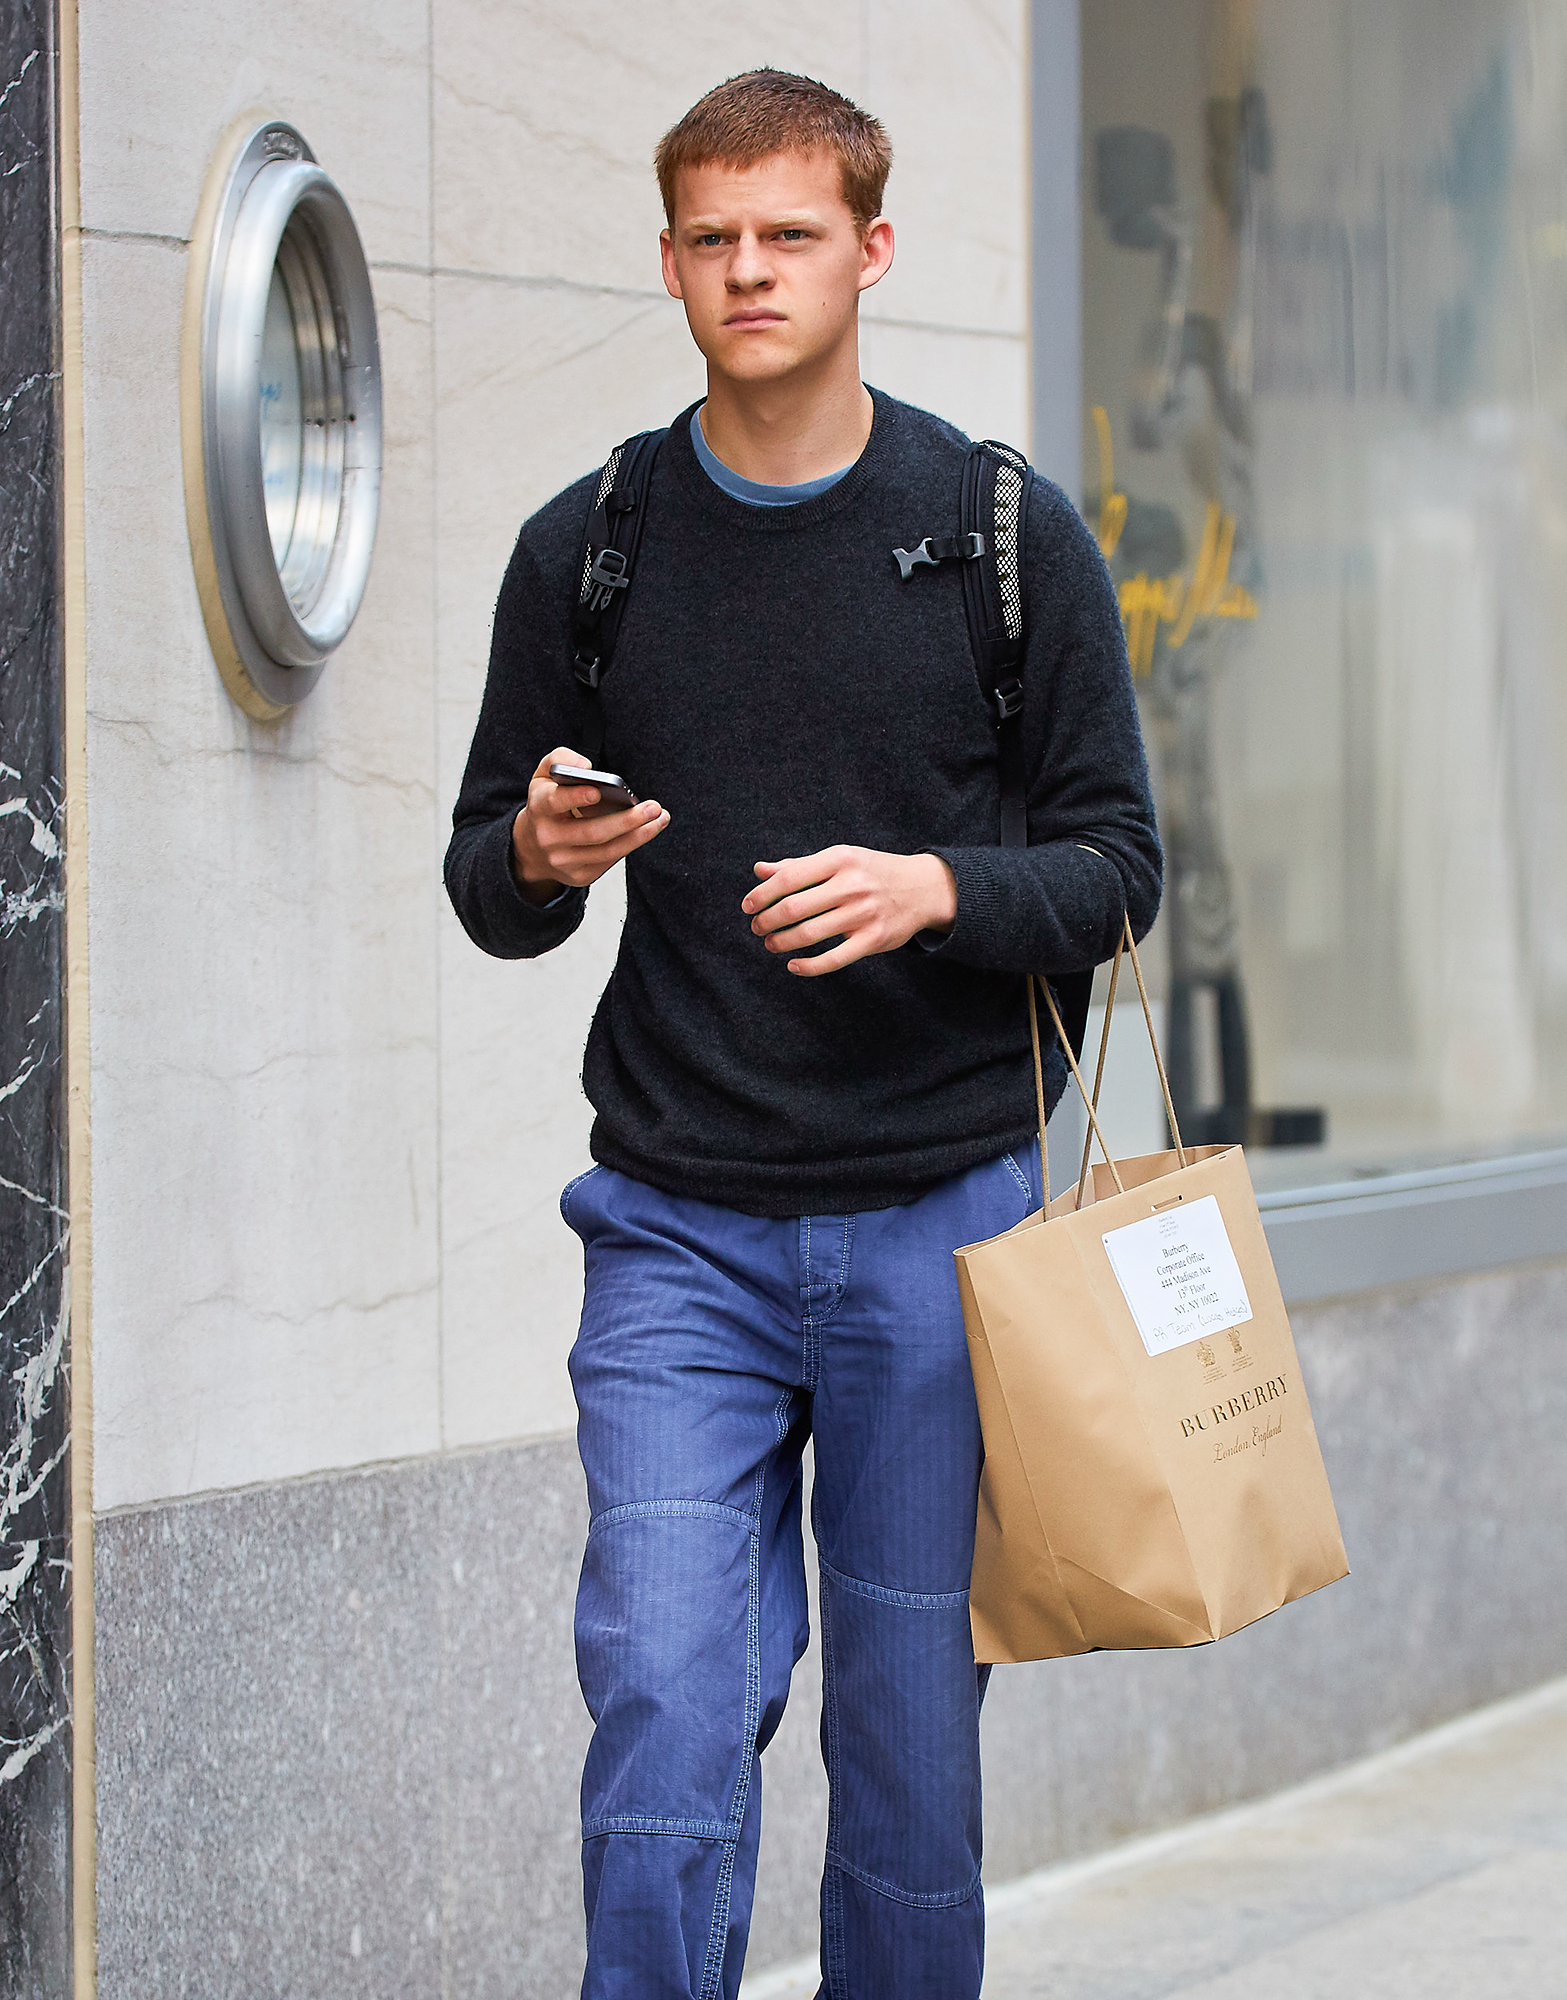 EXCLUSIVE: Lucas Hedges seen out and about in NYC